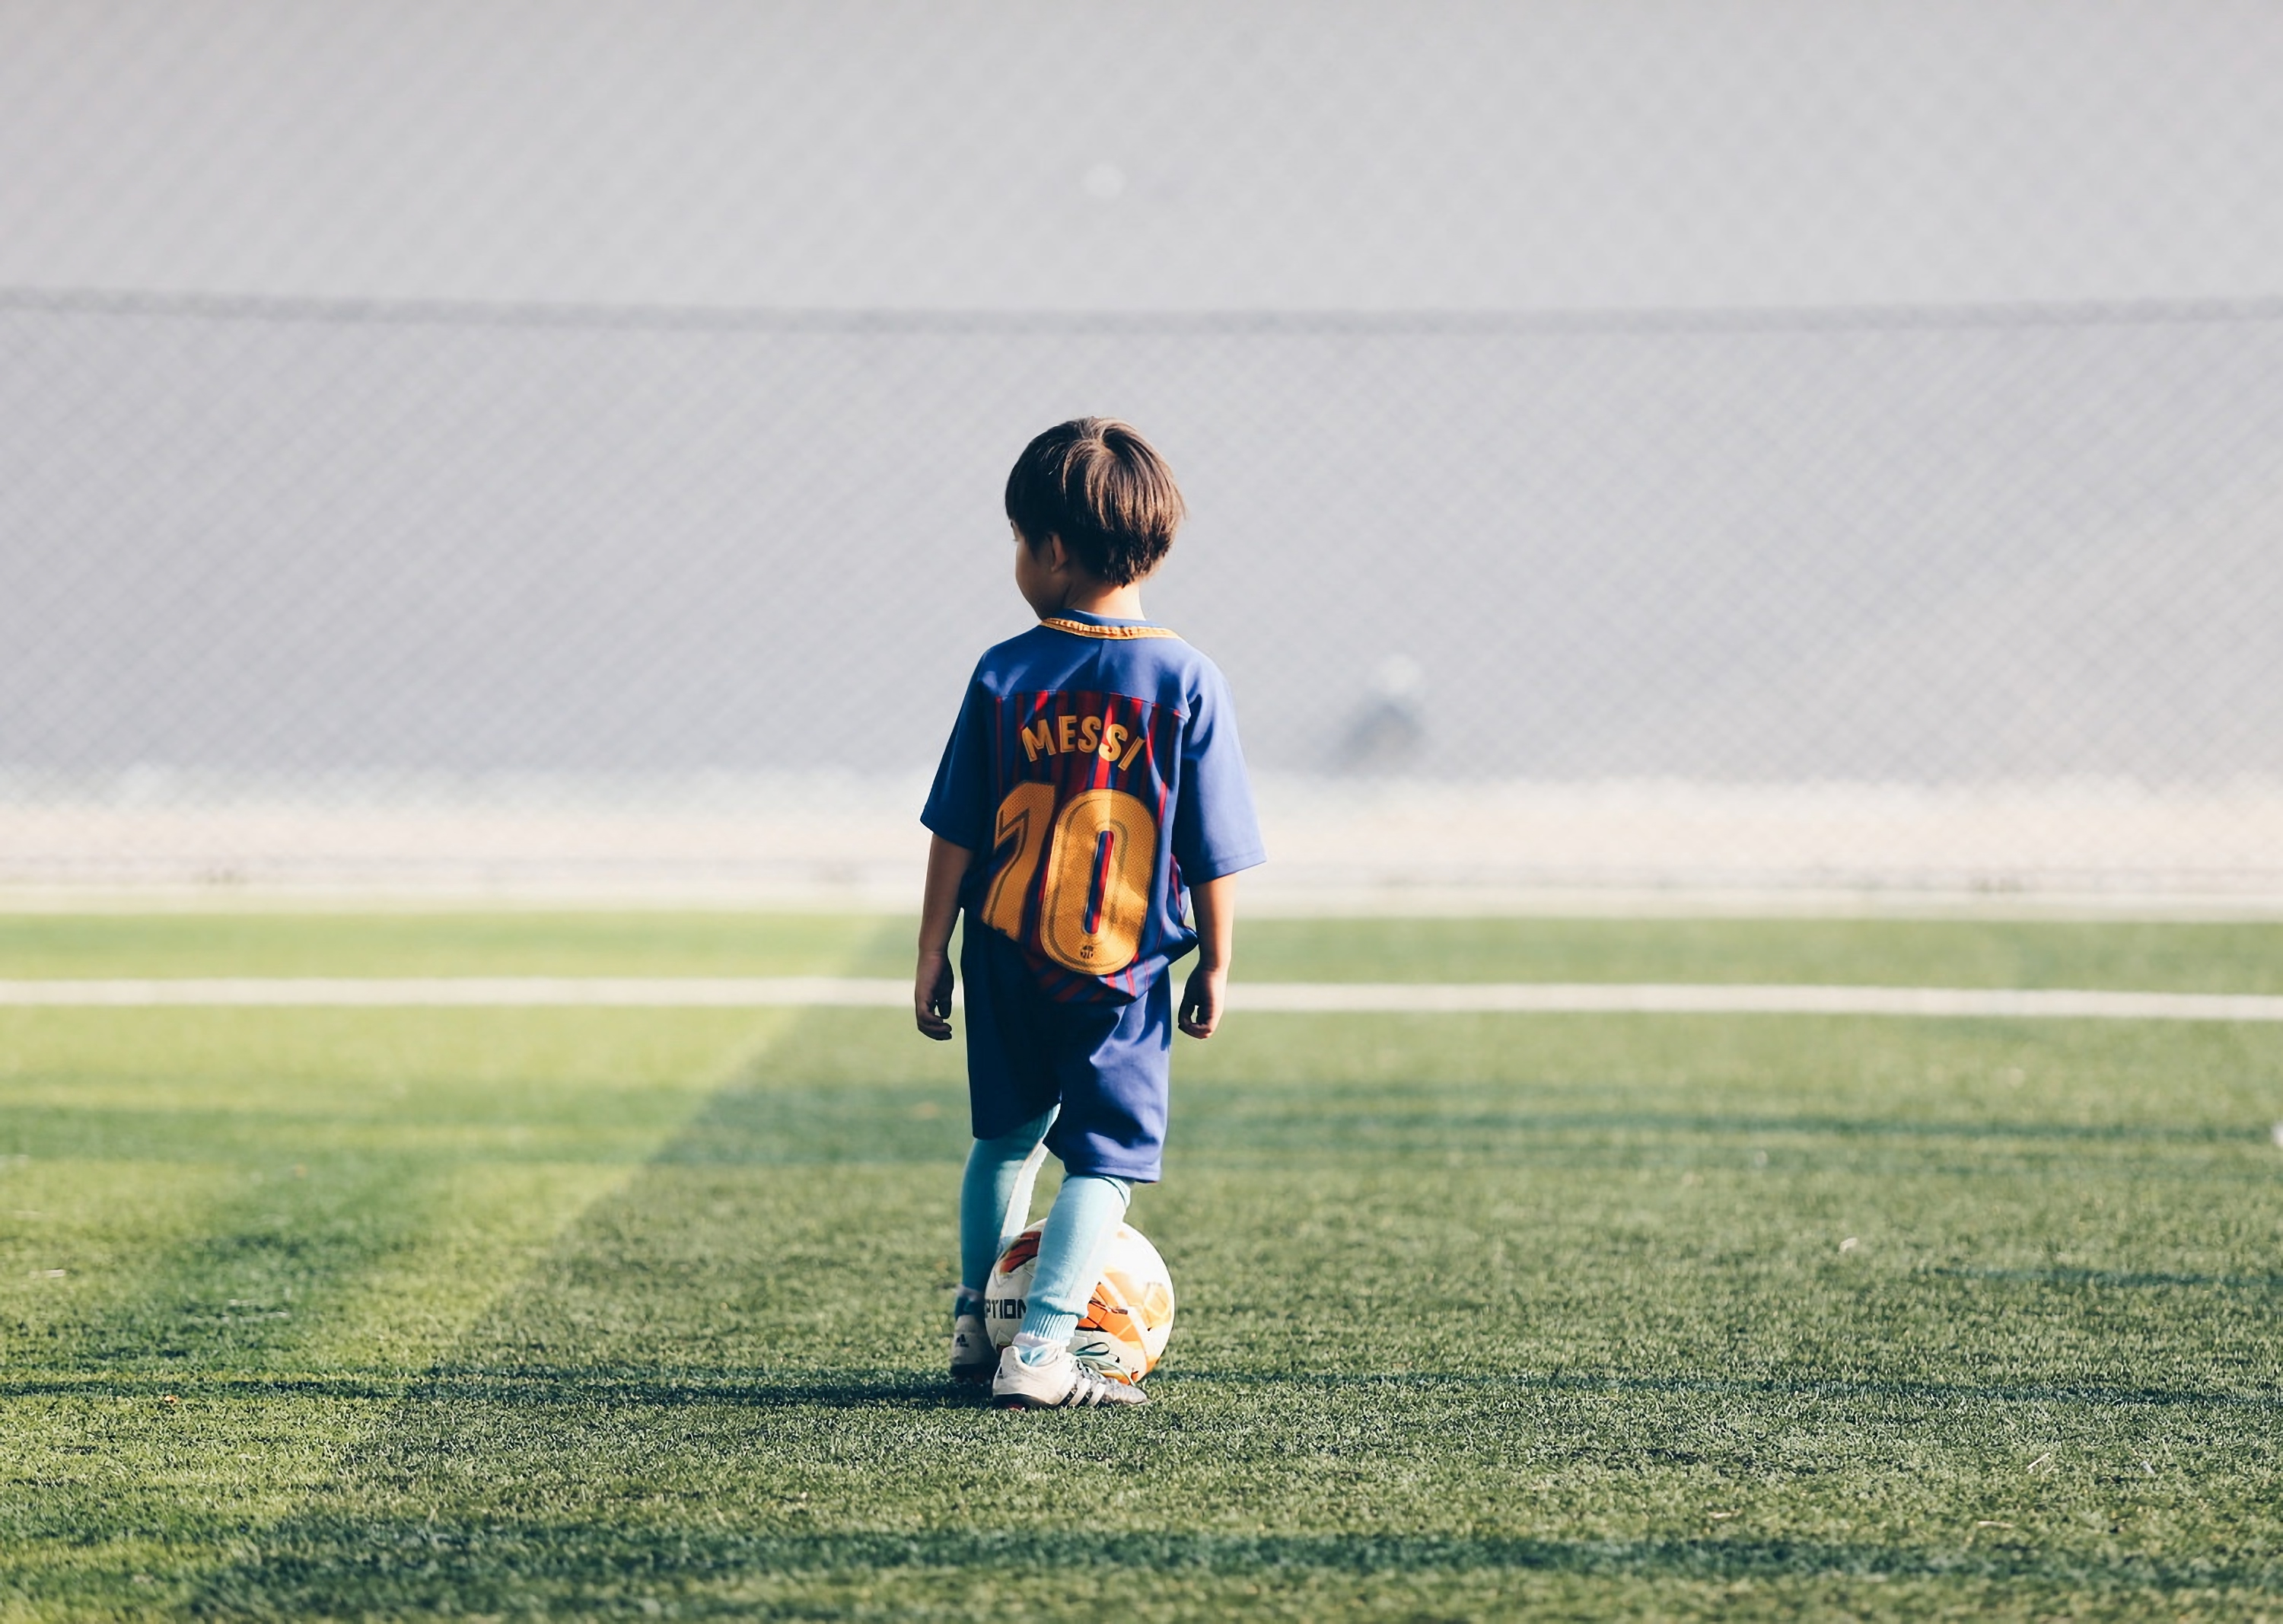 94777 download wallpaper Sports, Child, Footballer, Football, Football Field, Ball, Lawn screensavers and pictures for free